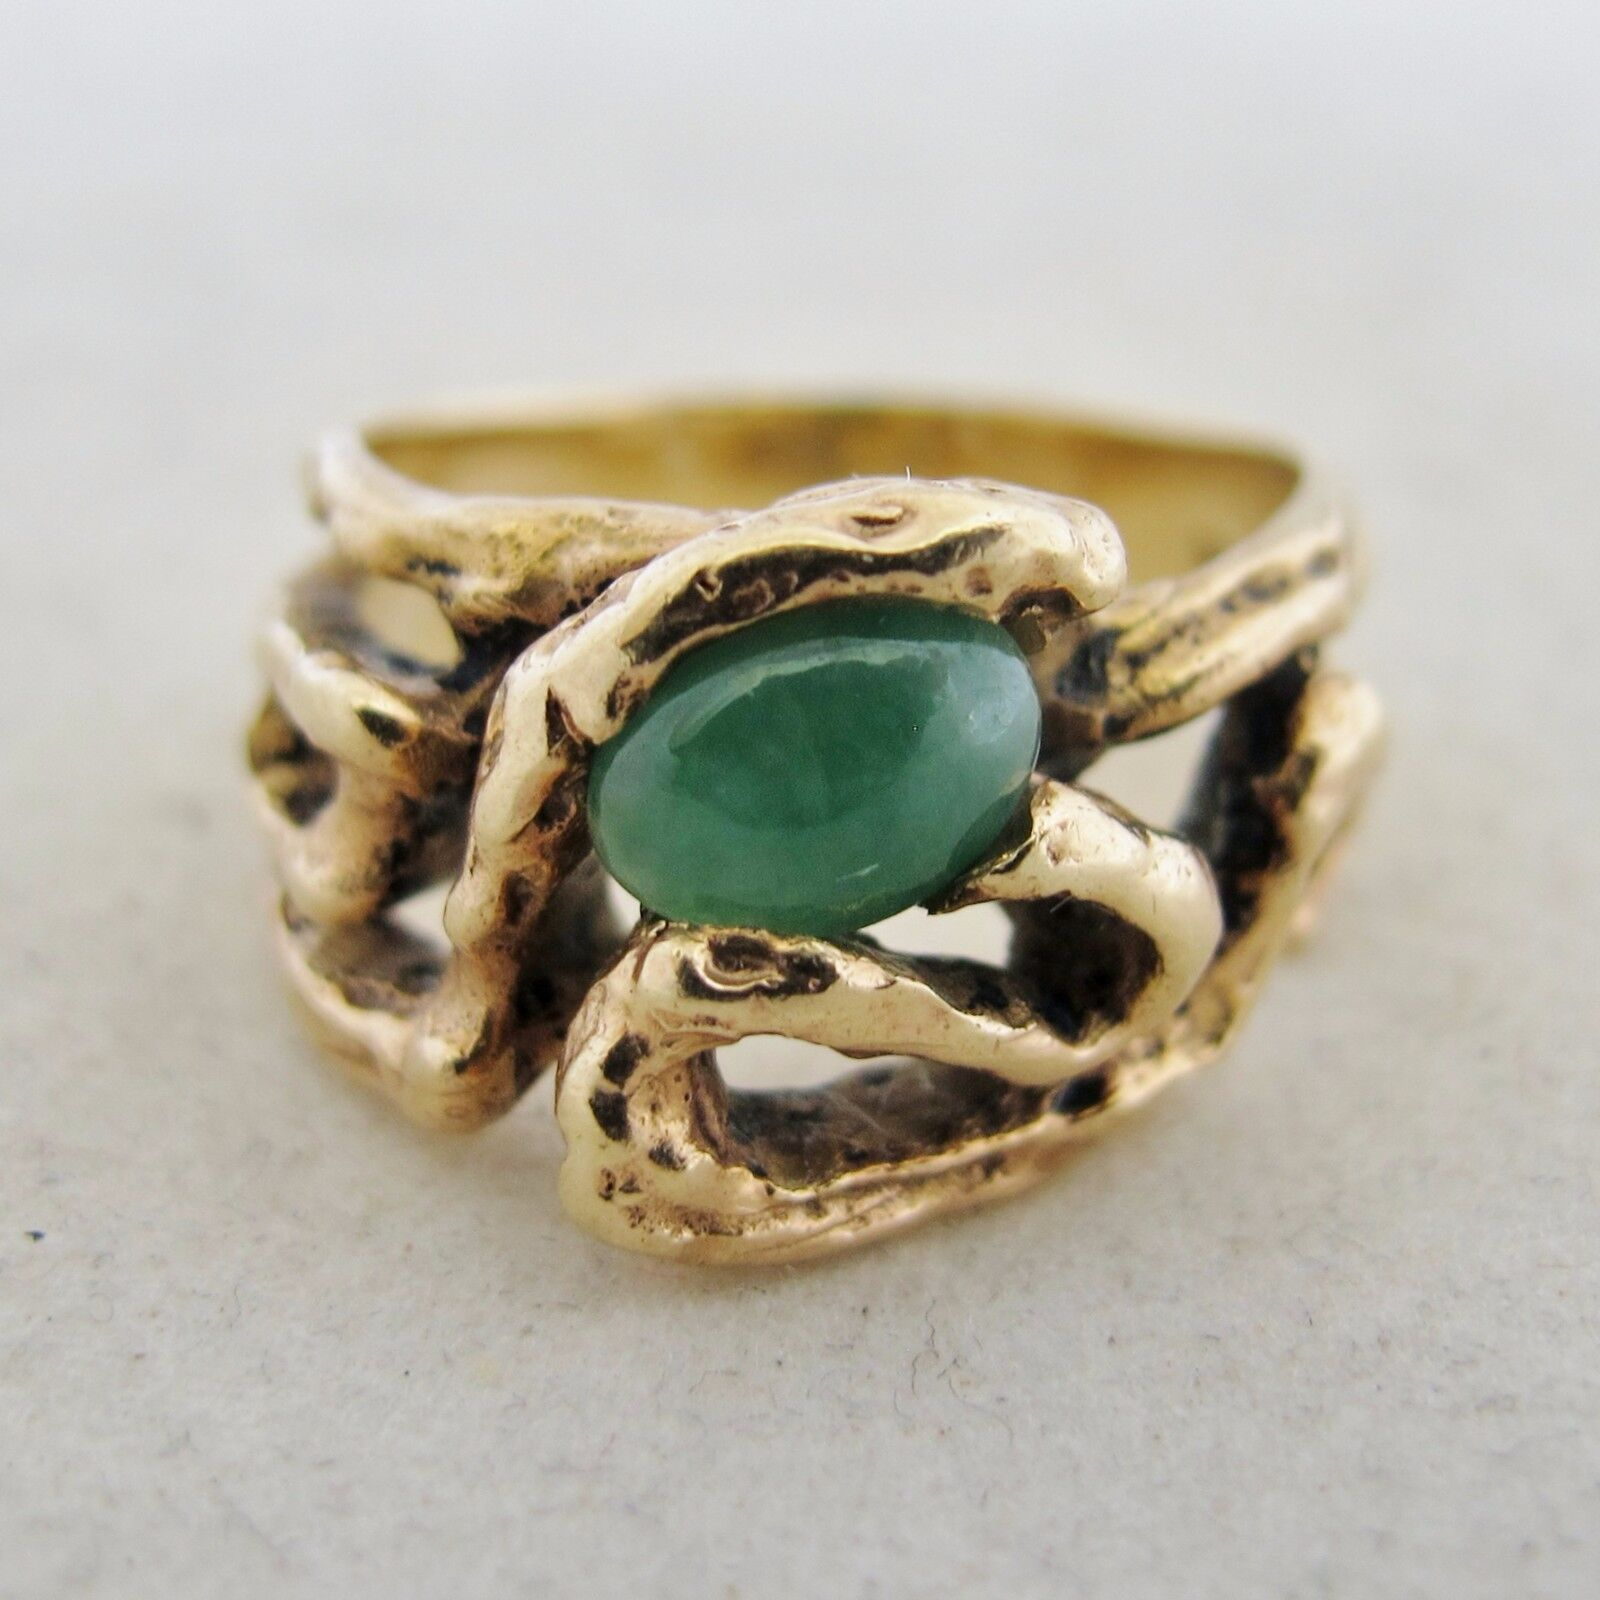 Vintage 14K gold Unisex Ring with 7.5mm Green JADEITE Jade  (7.5 grams, size 7)